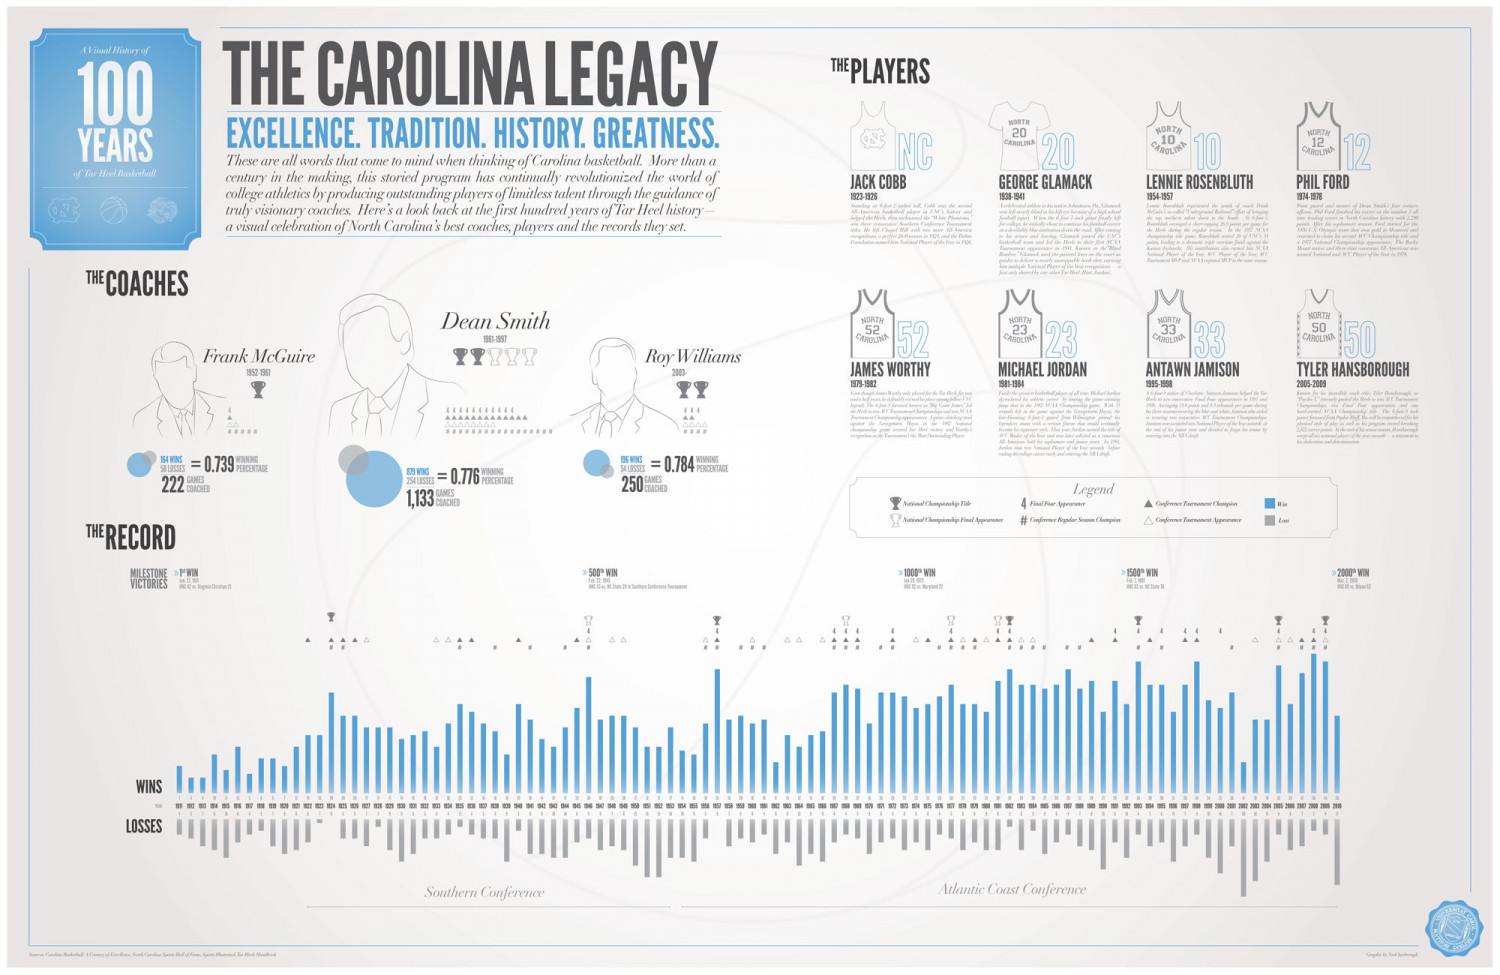 The Carolina legacy Infographic